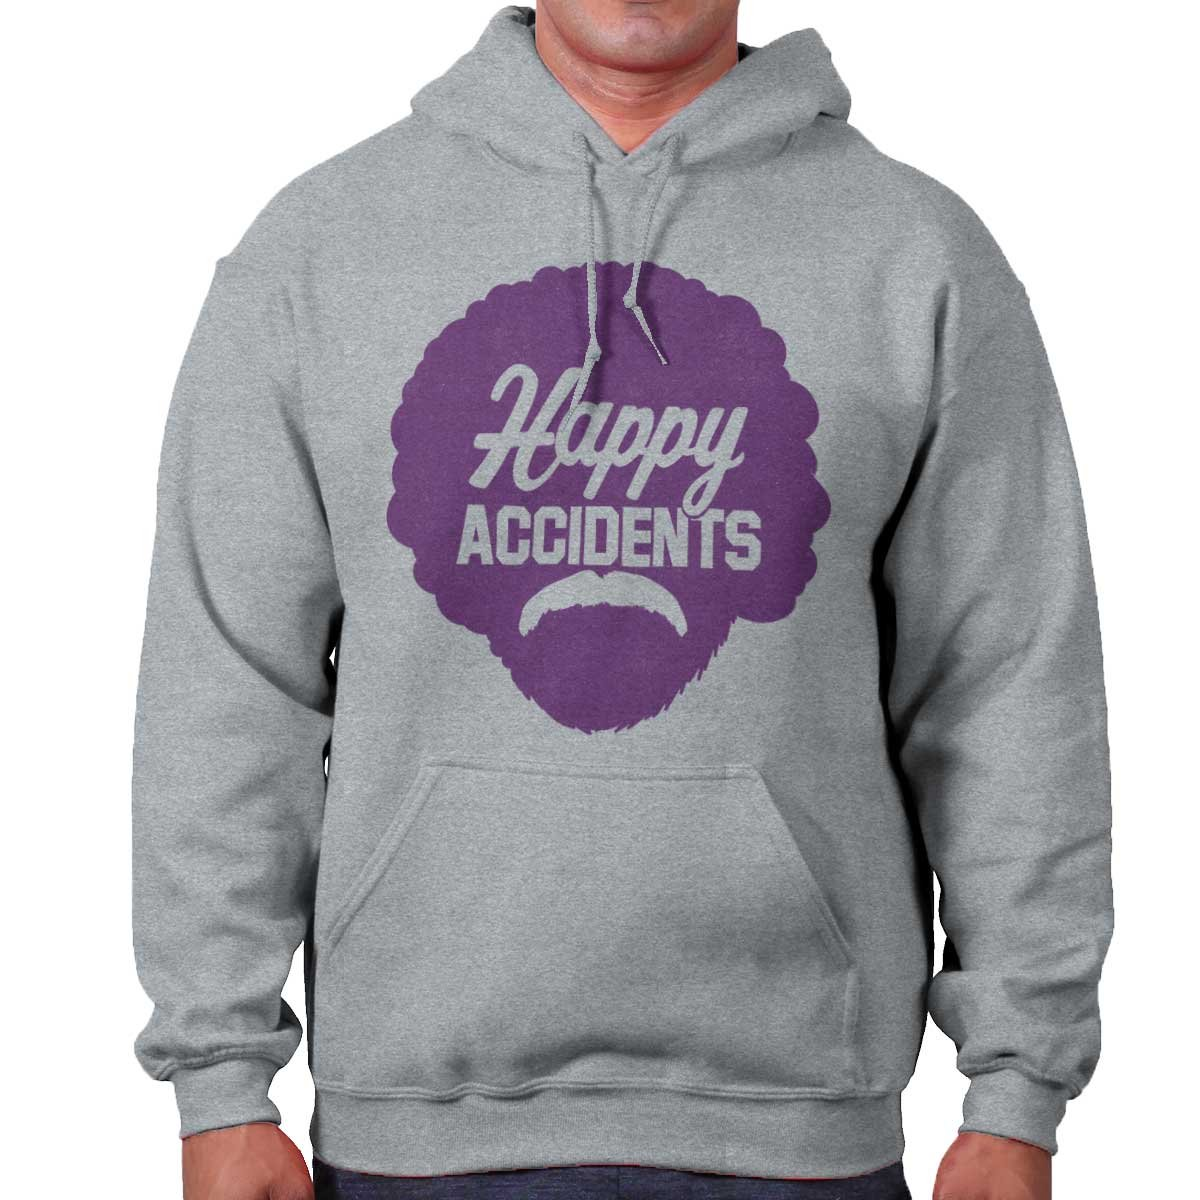 Brisco Brands Happy Accidents No Mistakes Bob Ross Joy of Painting Hoodie Sweatshirt by Brisco Brands (Image #1)